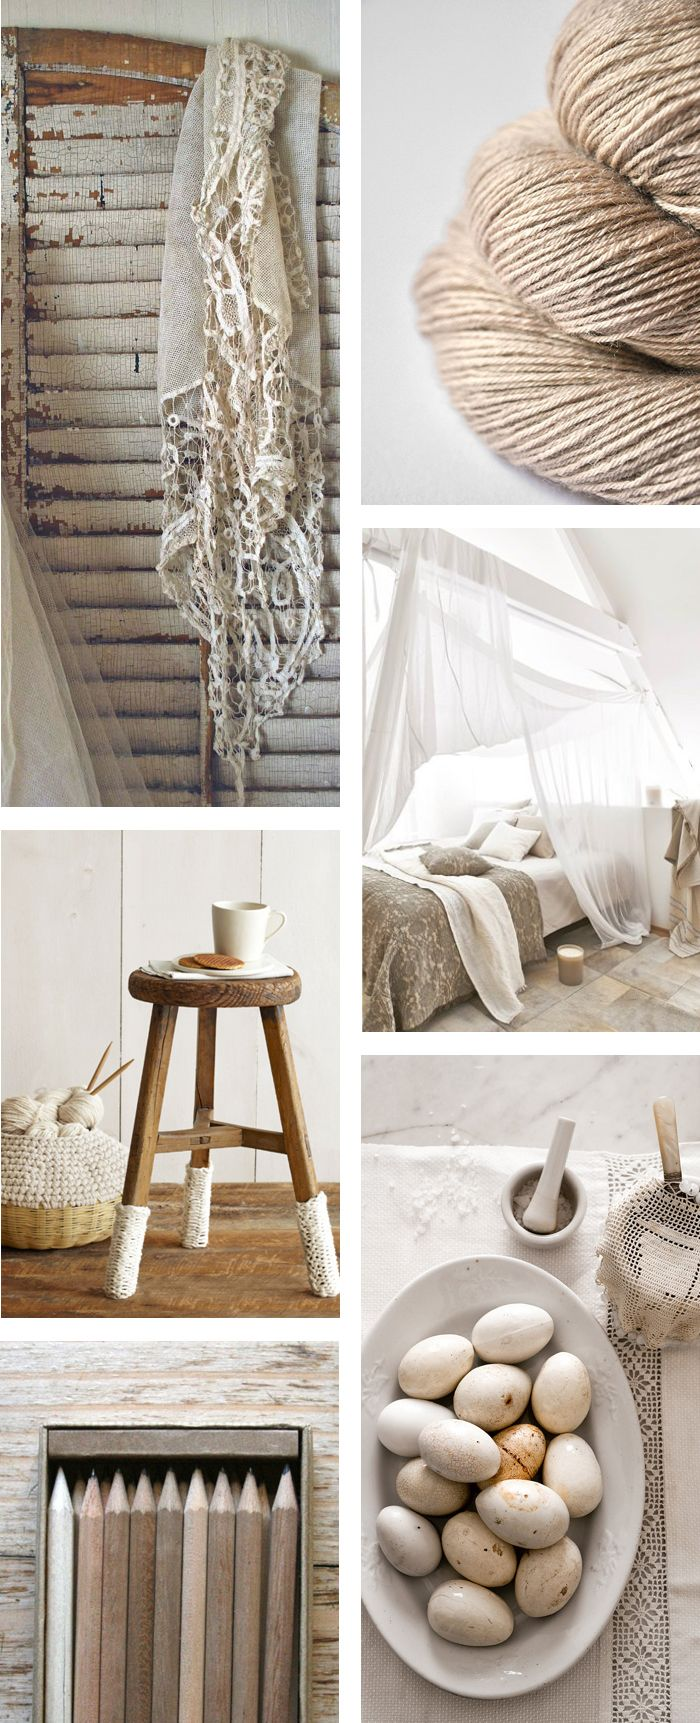 How to bring texture to a white interior. Blog — The Marion House Book